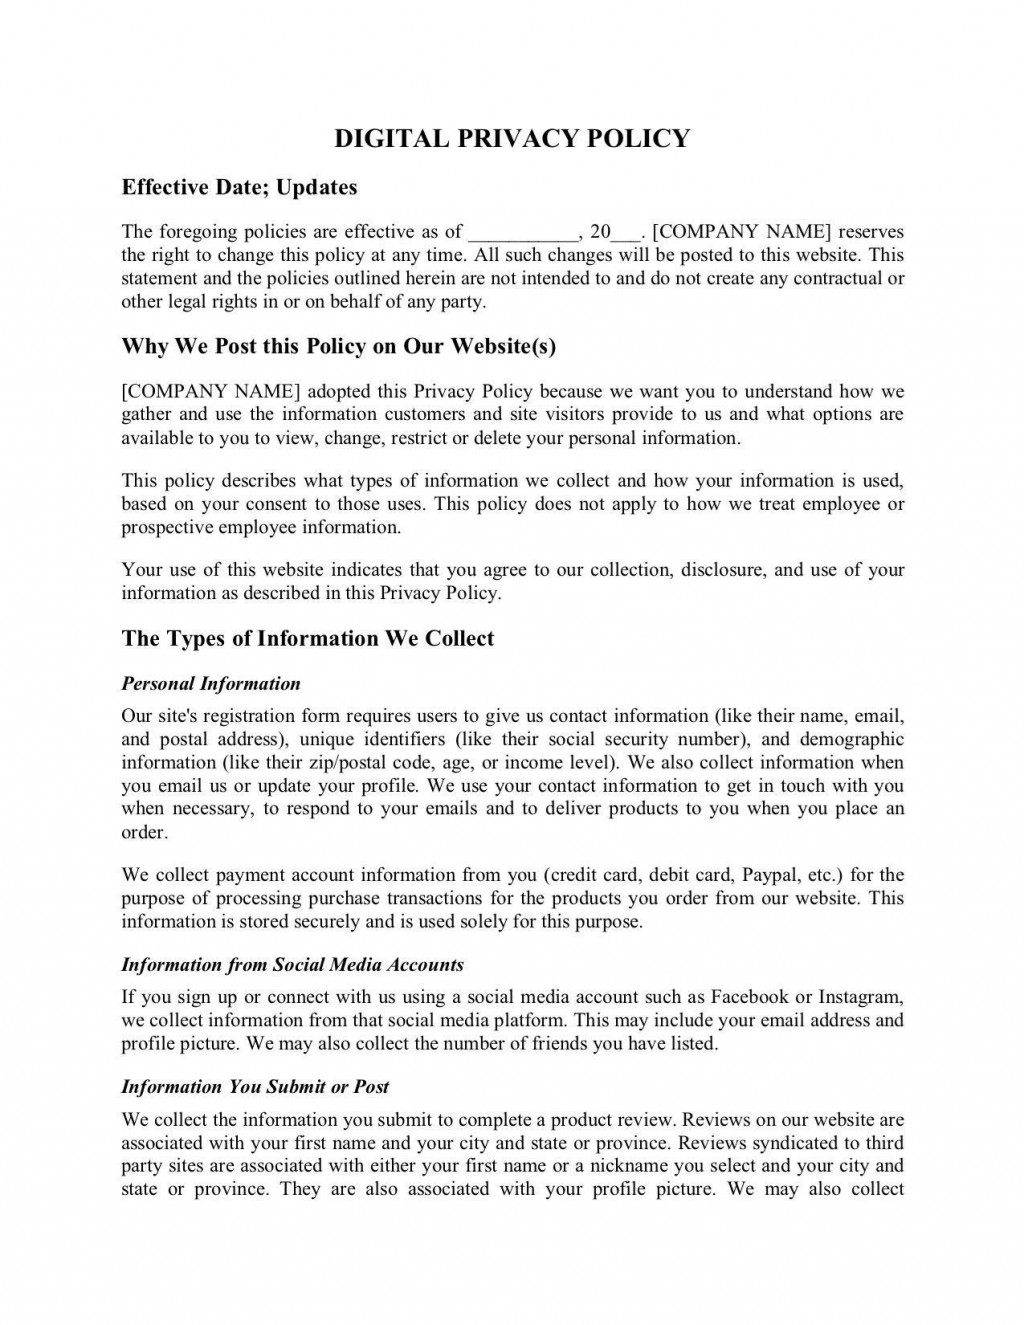 003 Sensational Company Privacy Policy Template Design  For Software AustraliaLarge